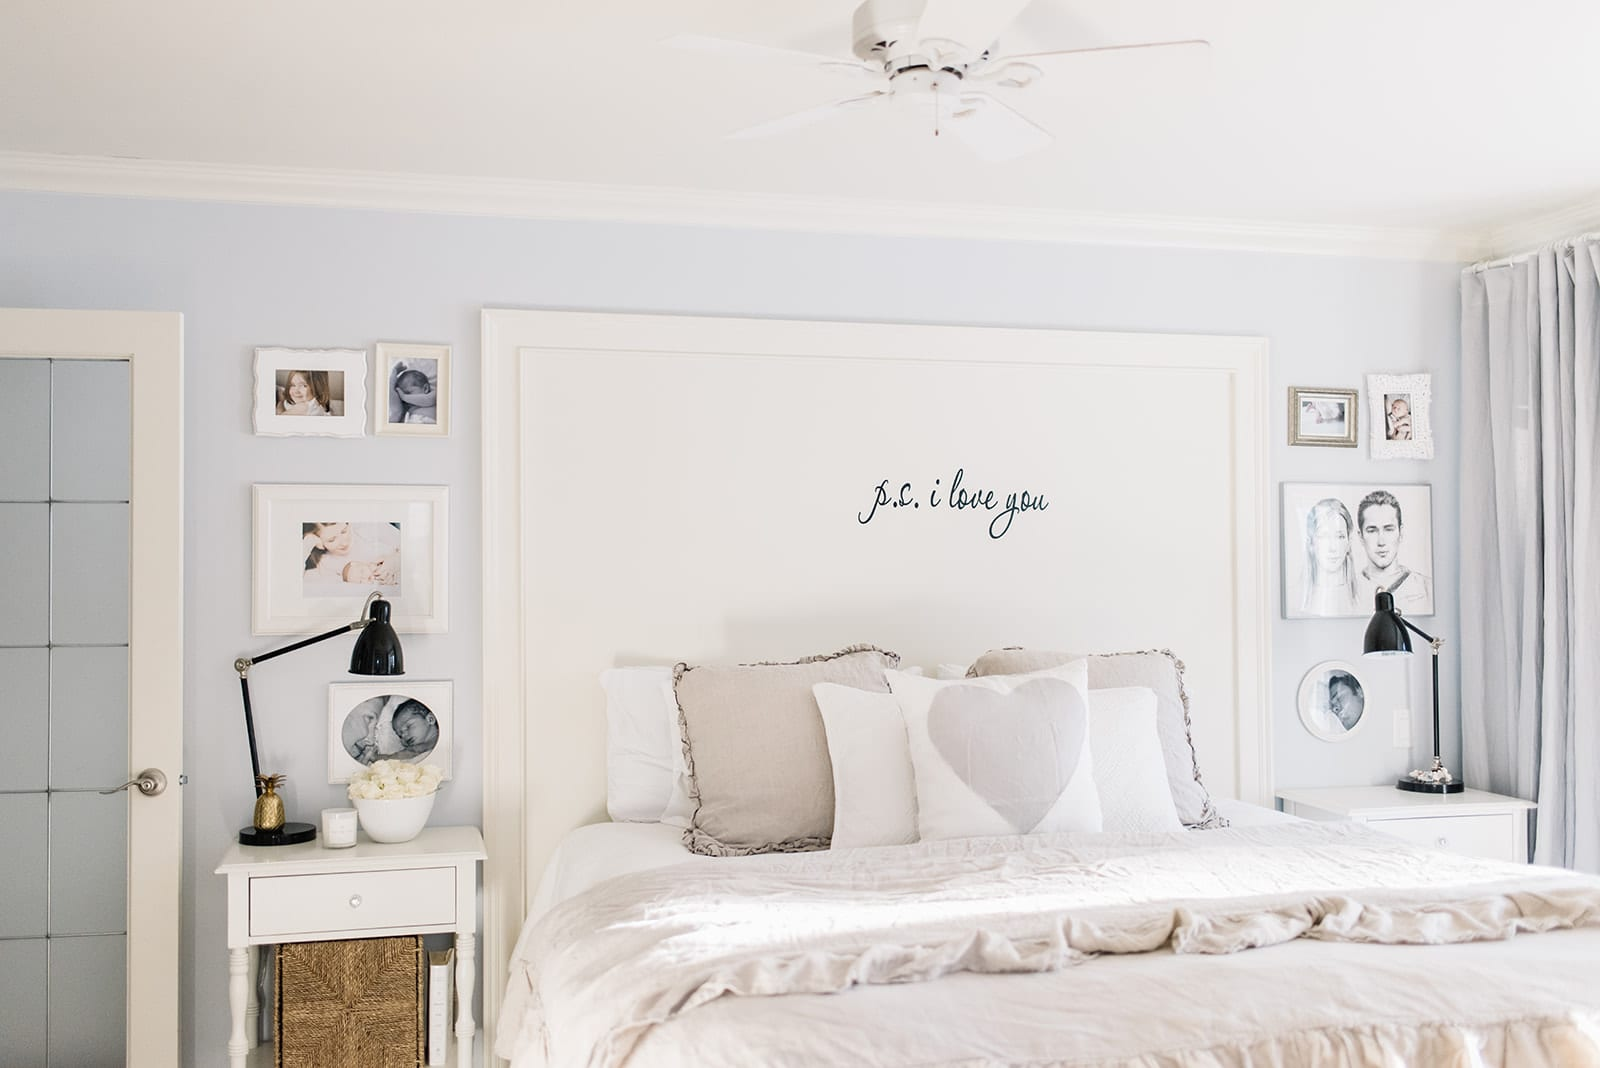 A bedroom with a King size bed